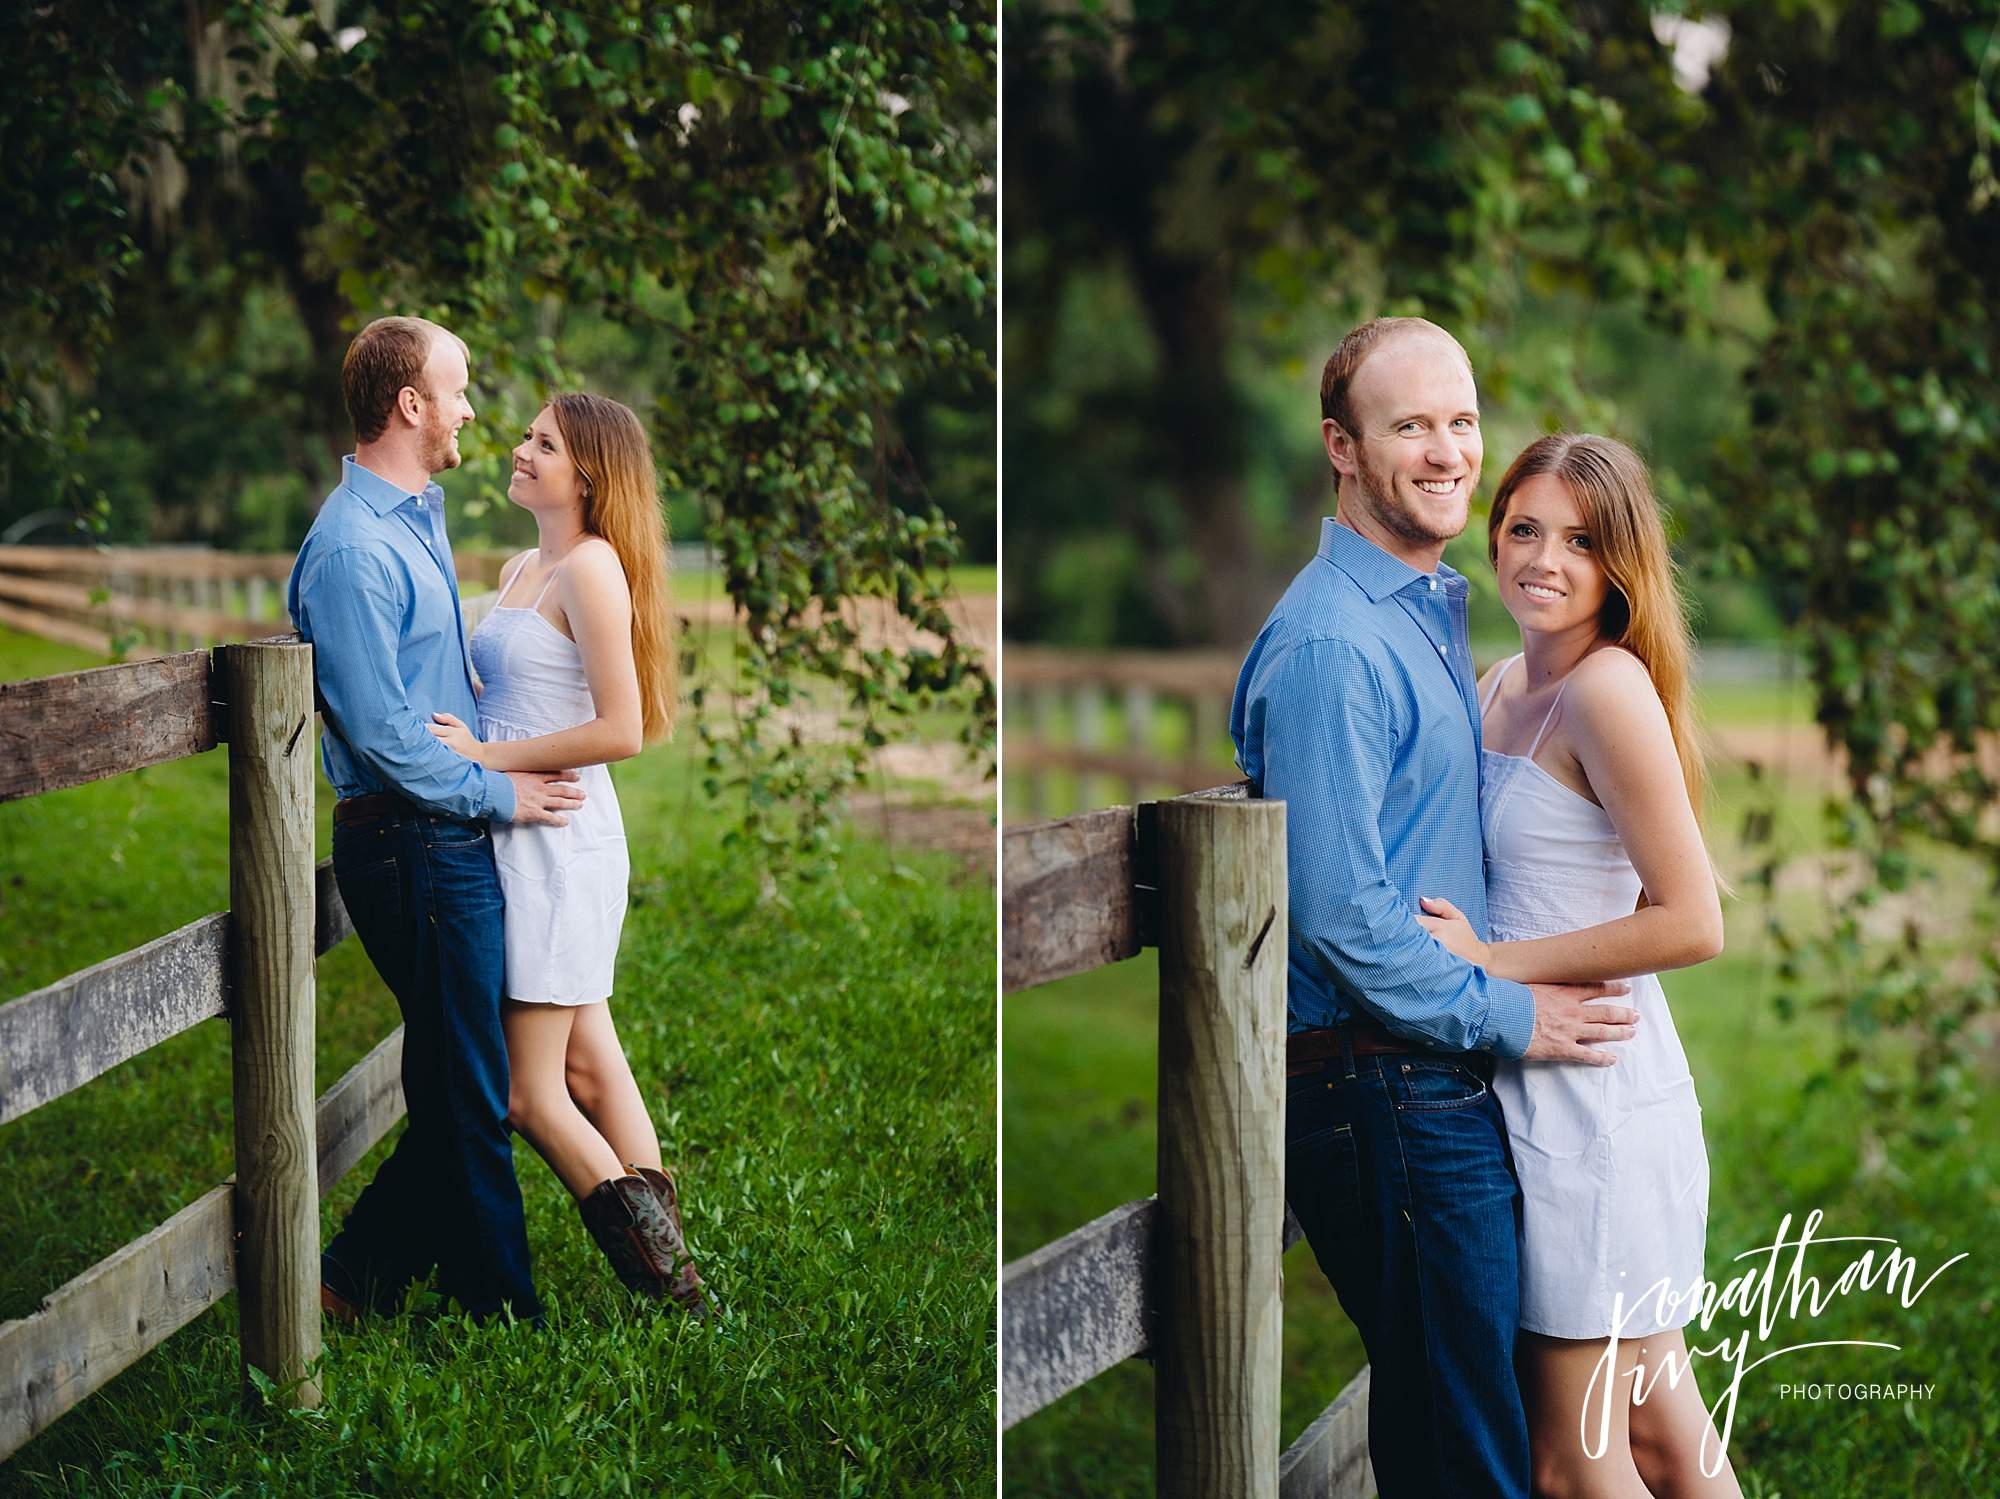 Country-rustic-engagement-photographer_0013.jpg